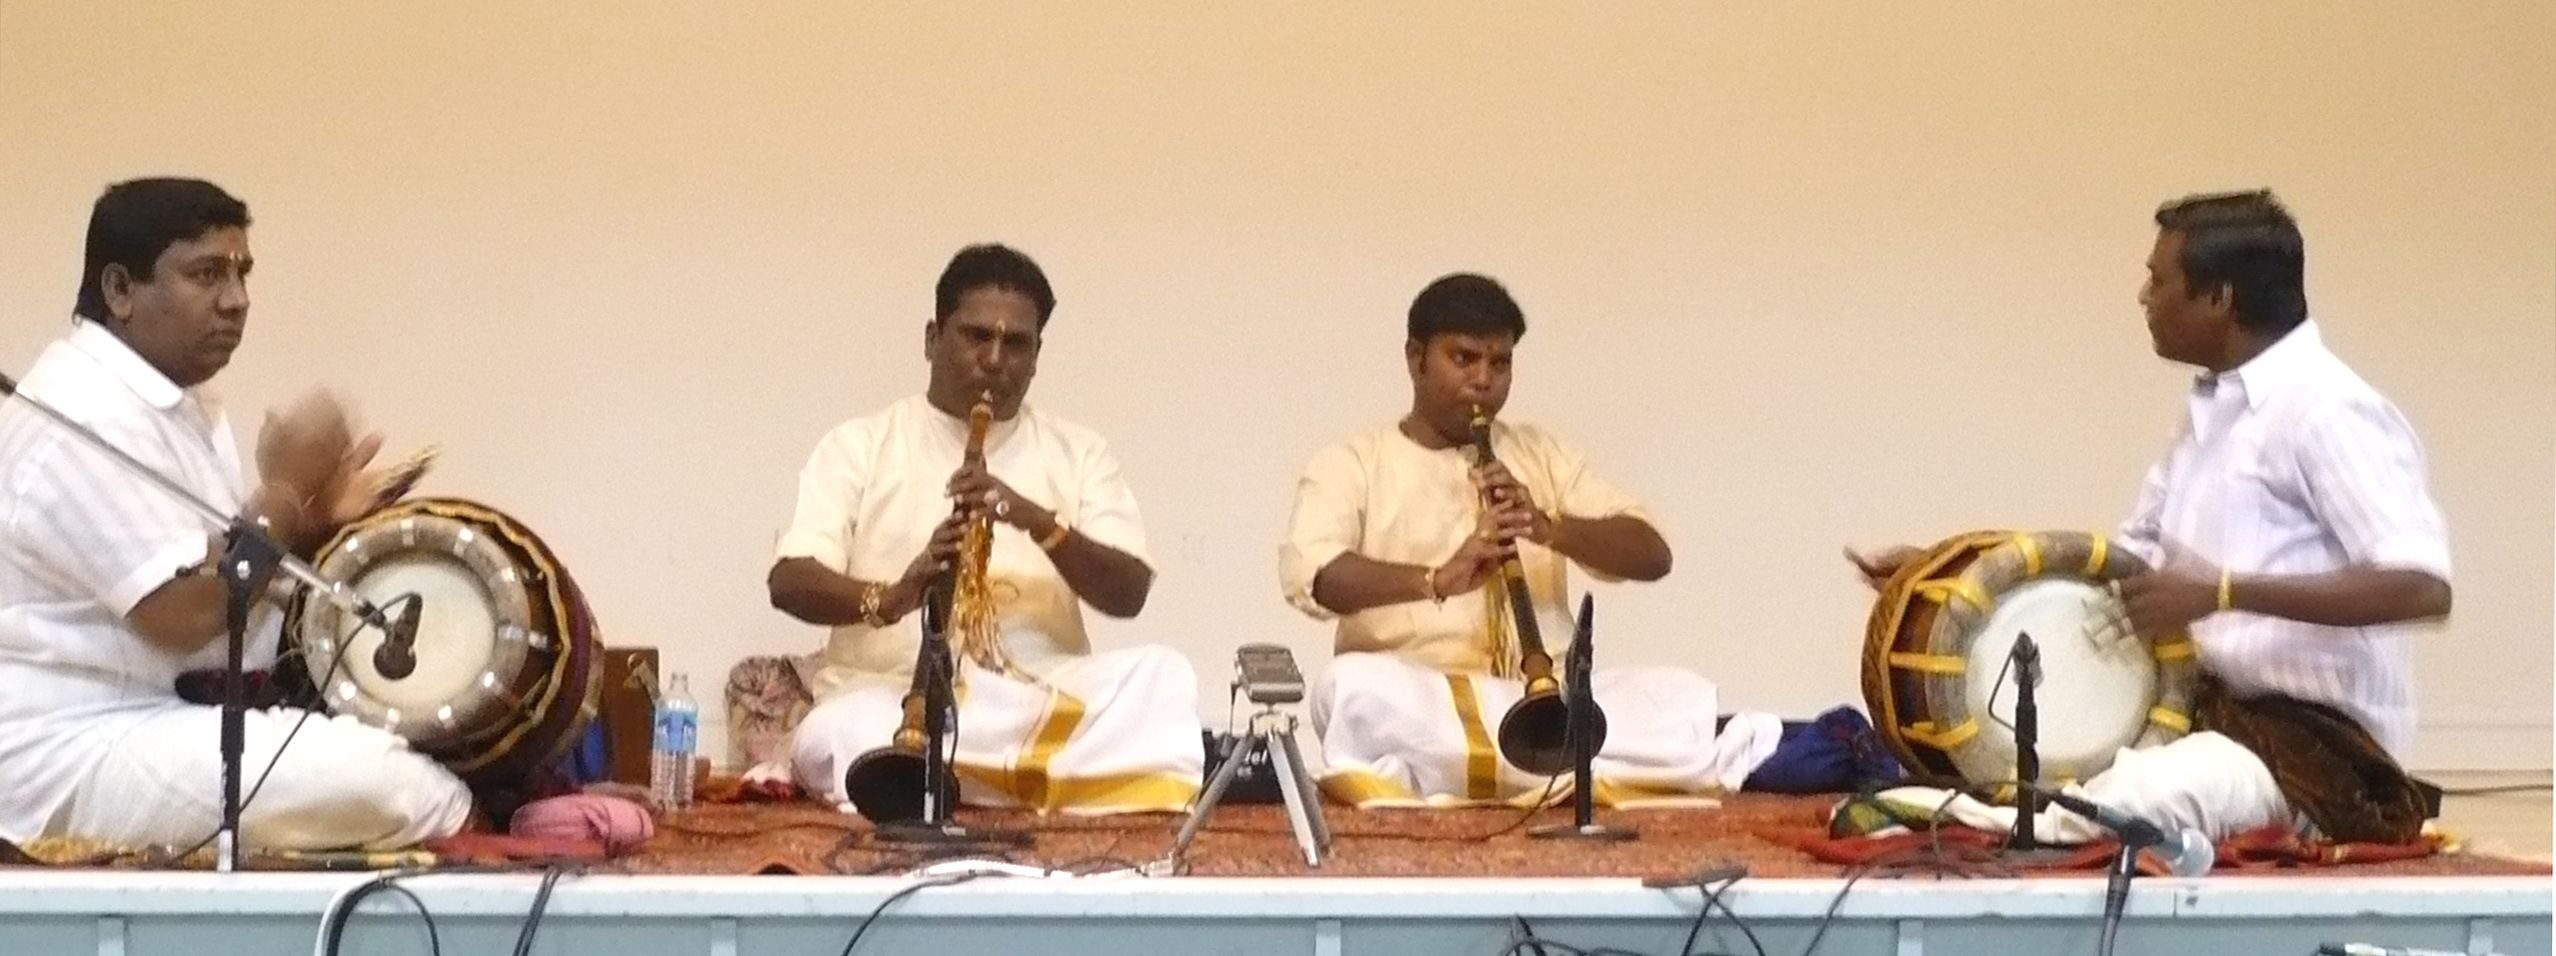 south indian live musicians Tamil Weddings Pinterest